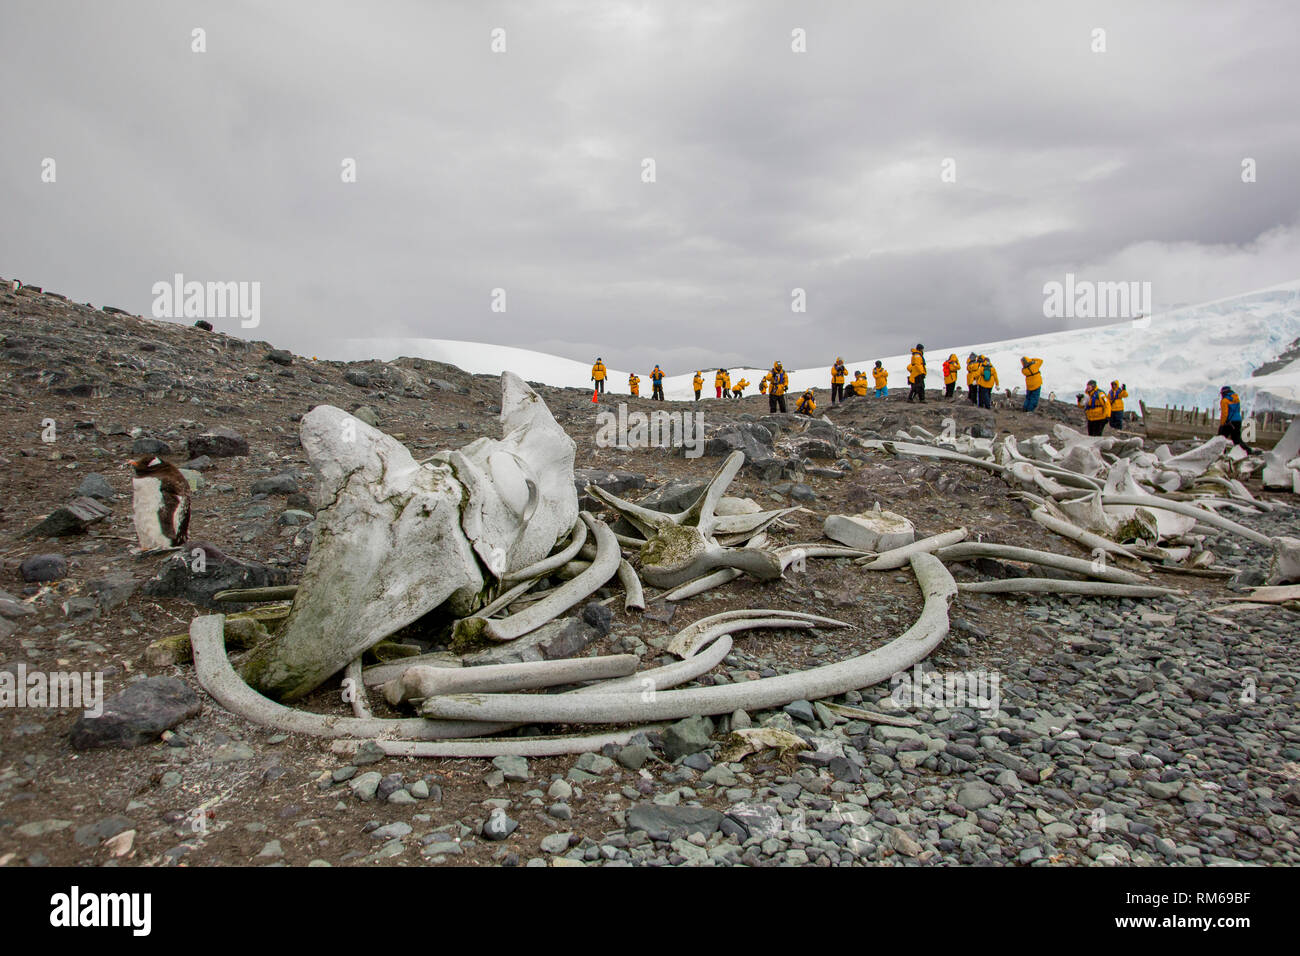 Skeletons of slaughtered whales over the last century. Photographed in Antarctica - Stock Image